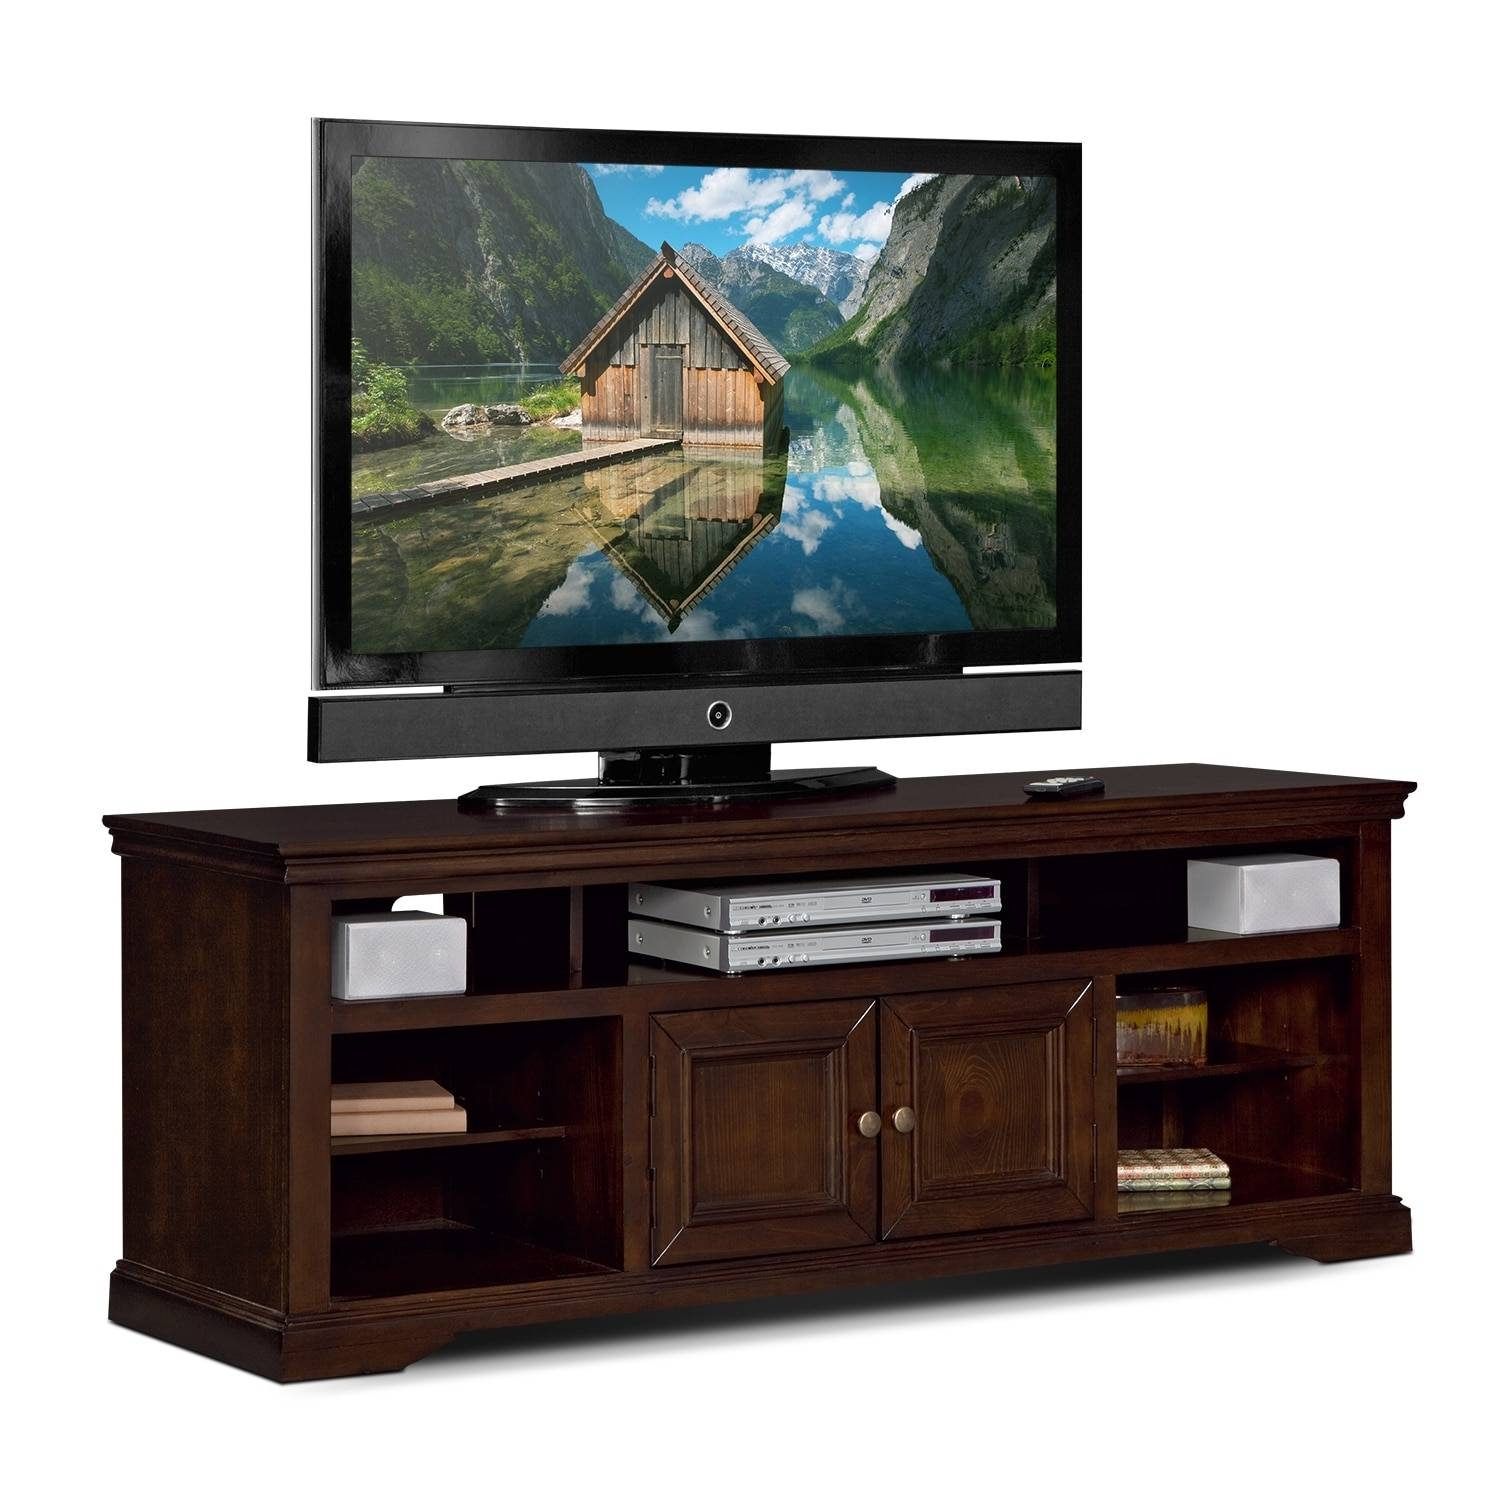 "Jenson 70"" Tv Stand - Cherry 